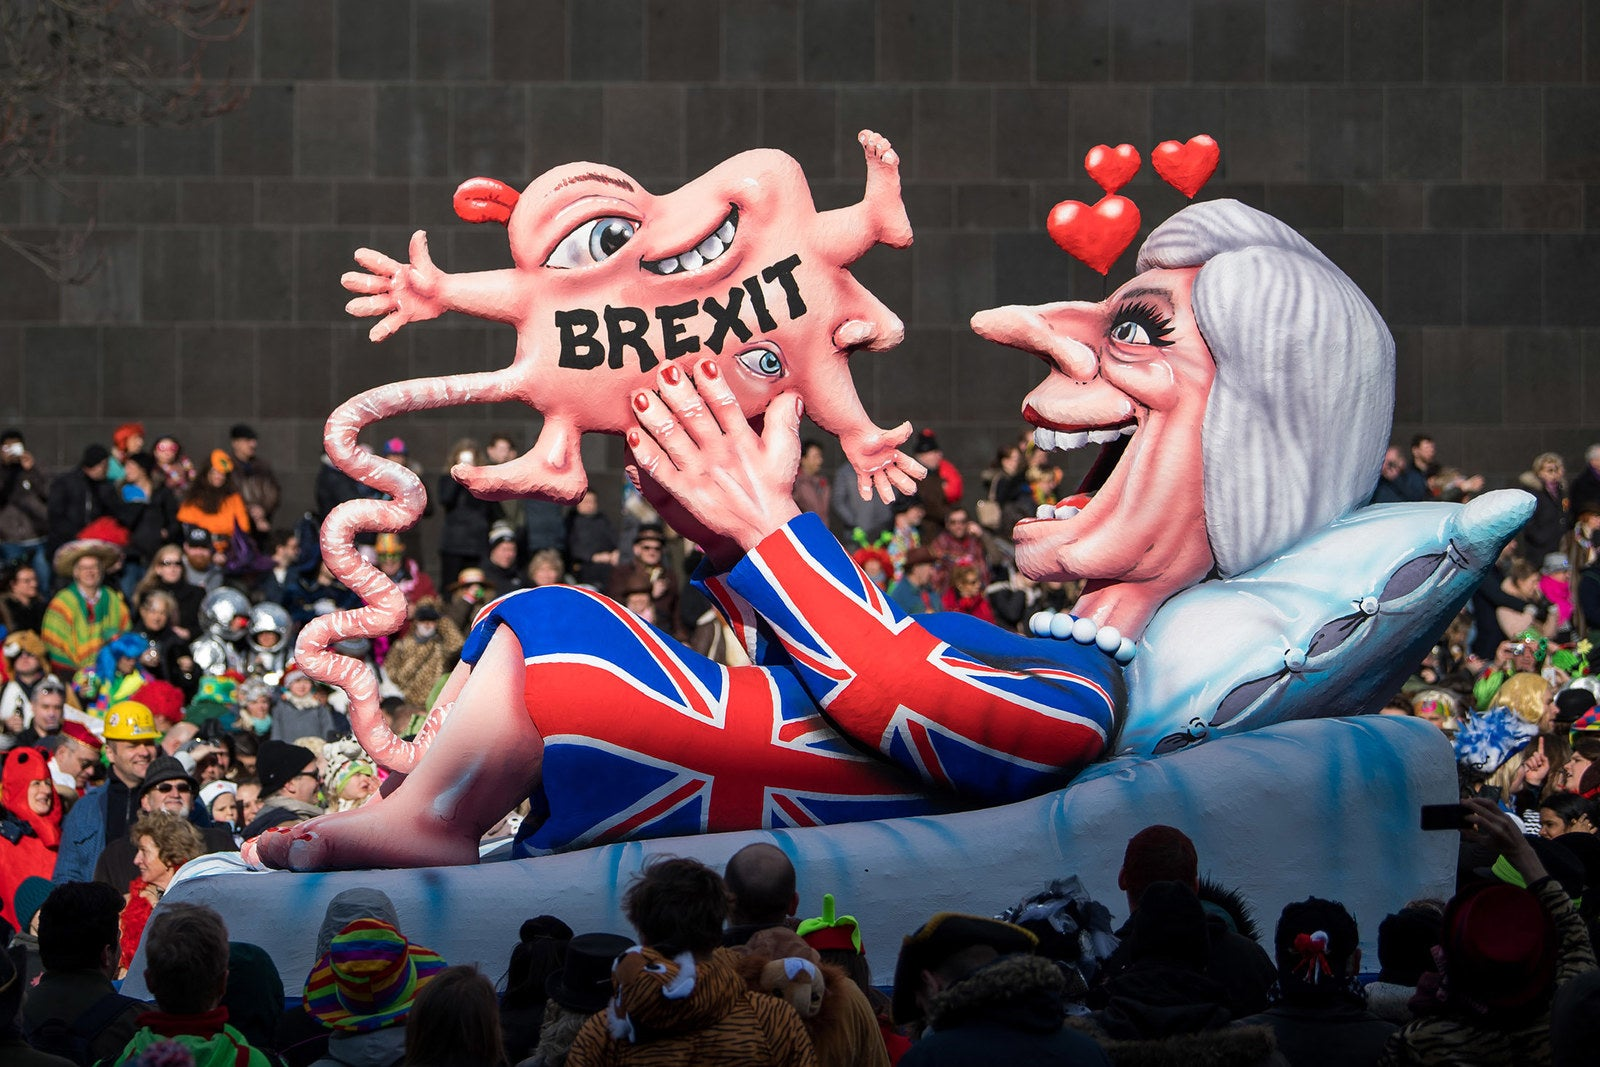 A float mocking Prime Minister Theresa May rolls past spectators during the annual Rose Monday parade on Feb. 12, in Dusseldorf, Germany. Political satire is a traditional cornerstone of the annual parades.